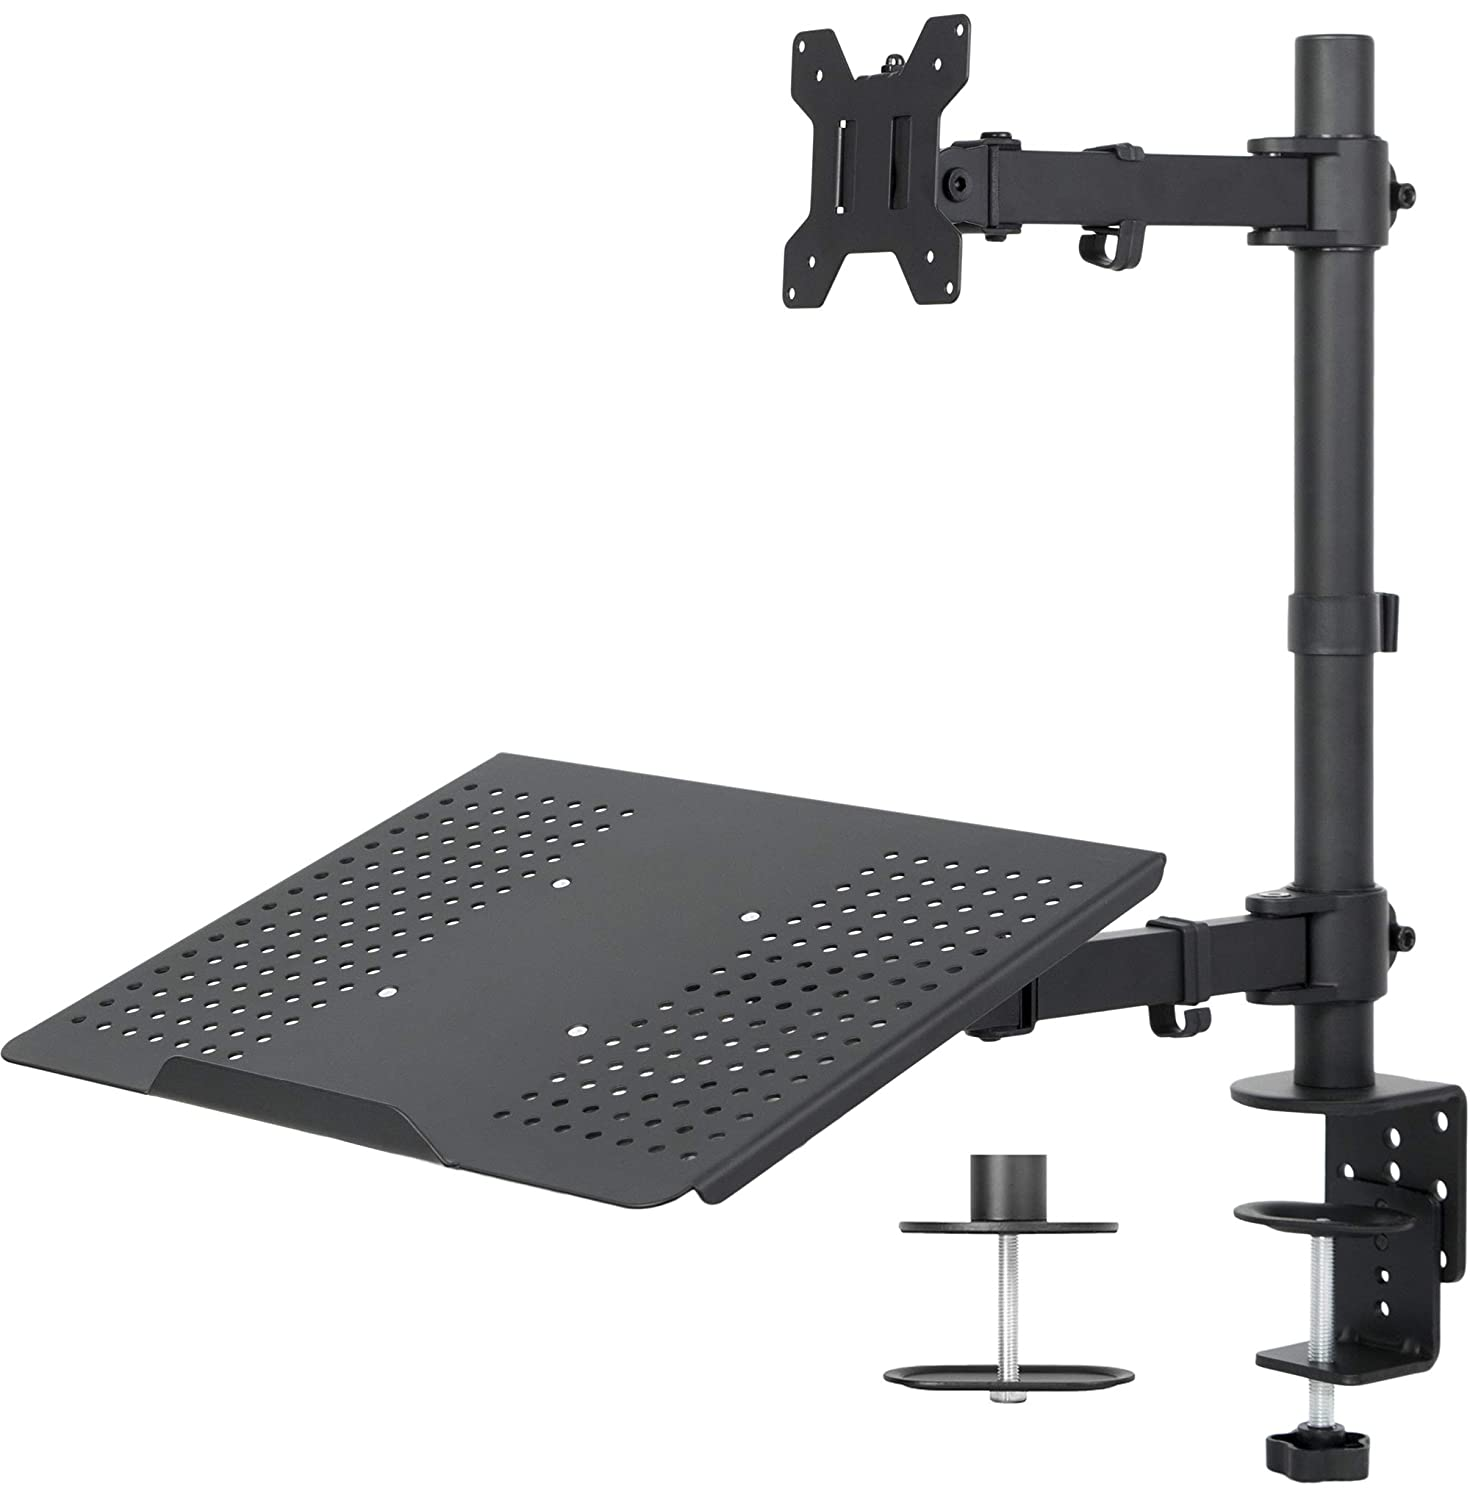 VIVO Black Fully Adjustable Single Computer Monitor and Laptop Desk Mount Combo, Stand with Grommet Option | Fits up to 24 inch Screens and up to 17 inch Laptops (STAND-V002C)